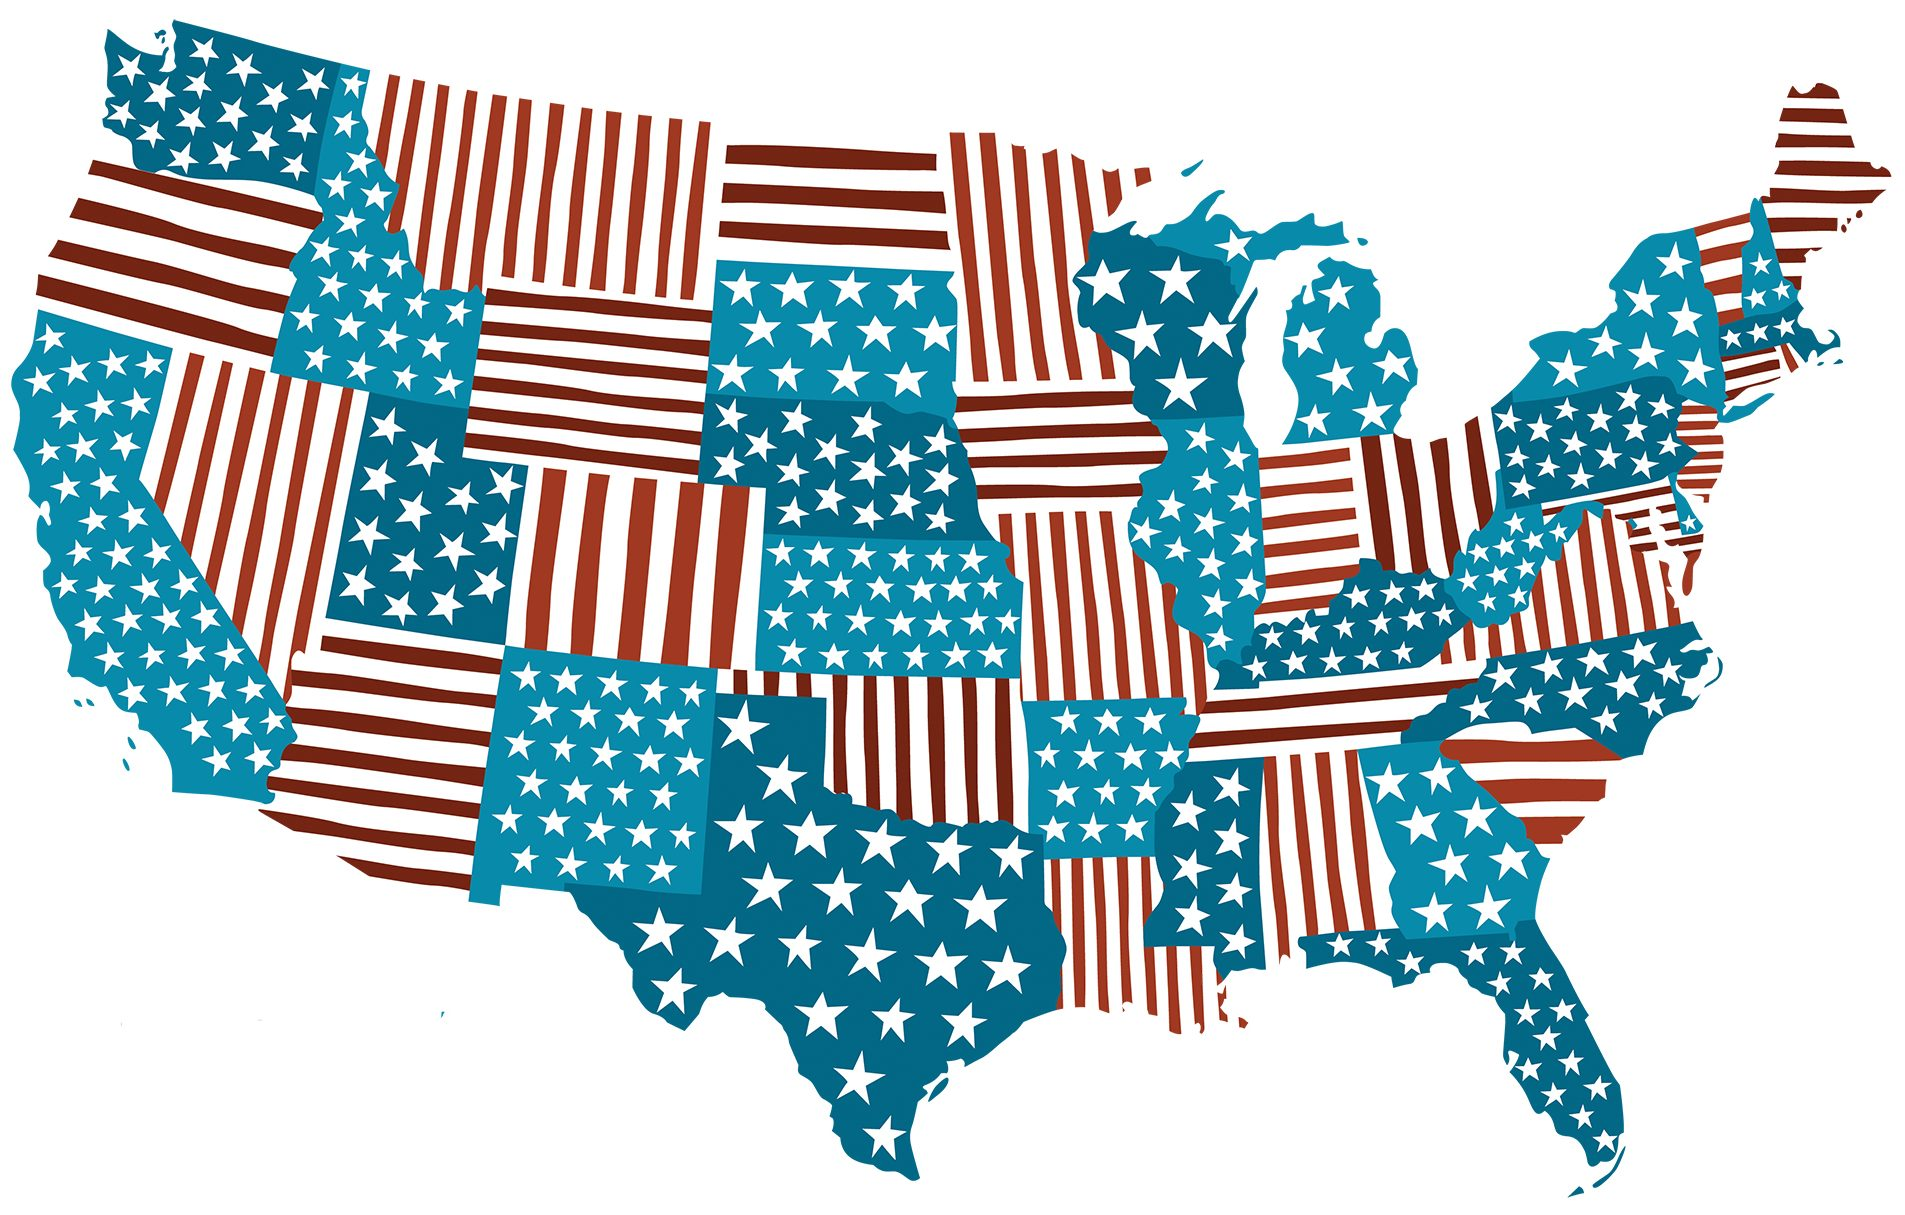 United states depicted as a stars and strips quilt